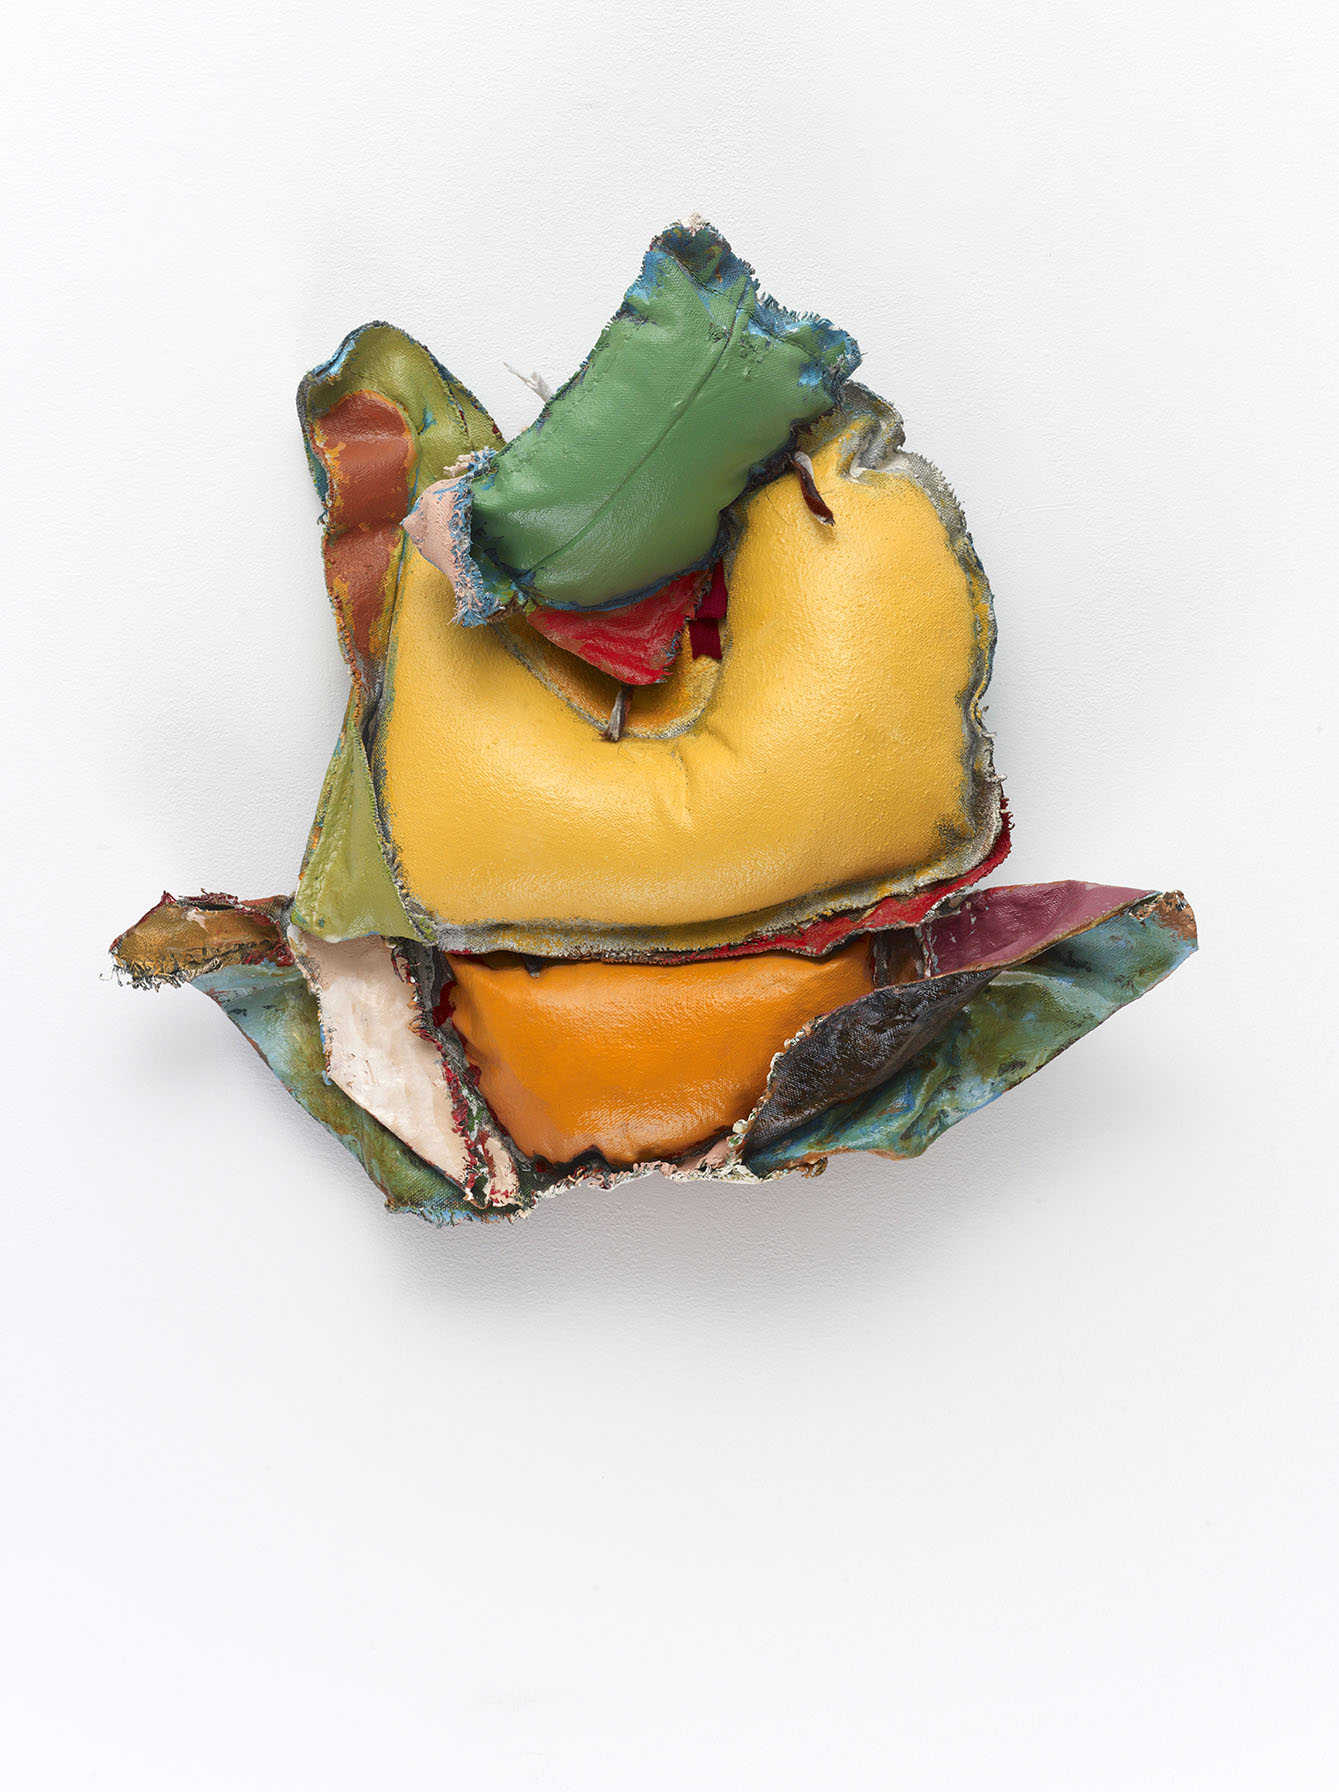 John Outterbridge, Rag and Bag Idiom I, 2012. Mixed media. 14 ½ x 15 ¾ x 3 ½ inches. The Eileen Harris Norton Collection. Image courtesy of Tilton Gallery, New York.